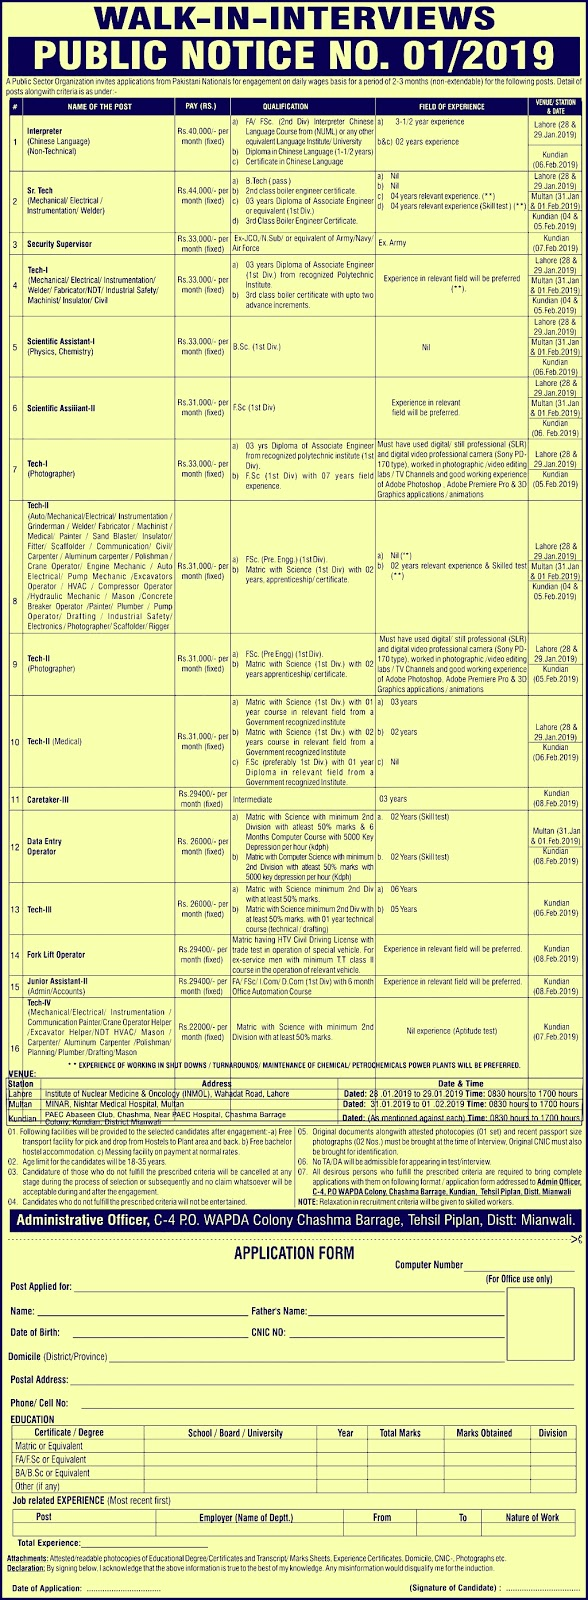 PAEC Atomic Energy New Jobs 2019 - PO Box 1331